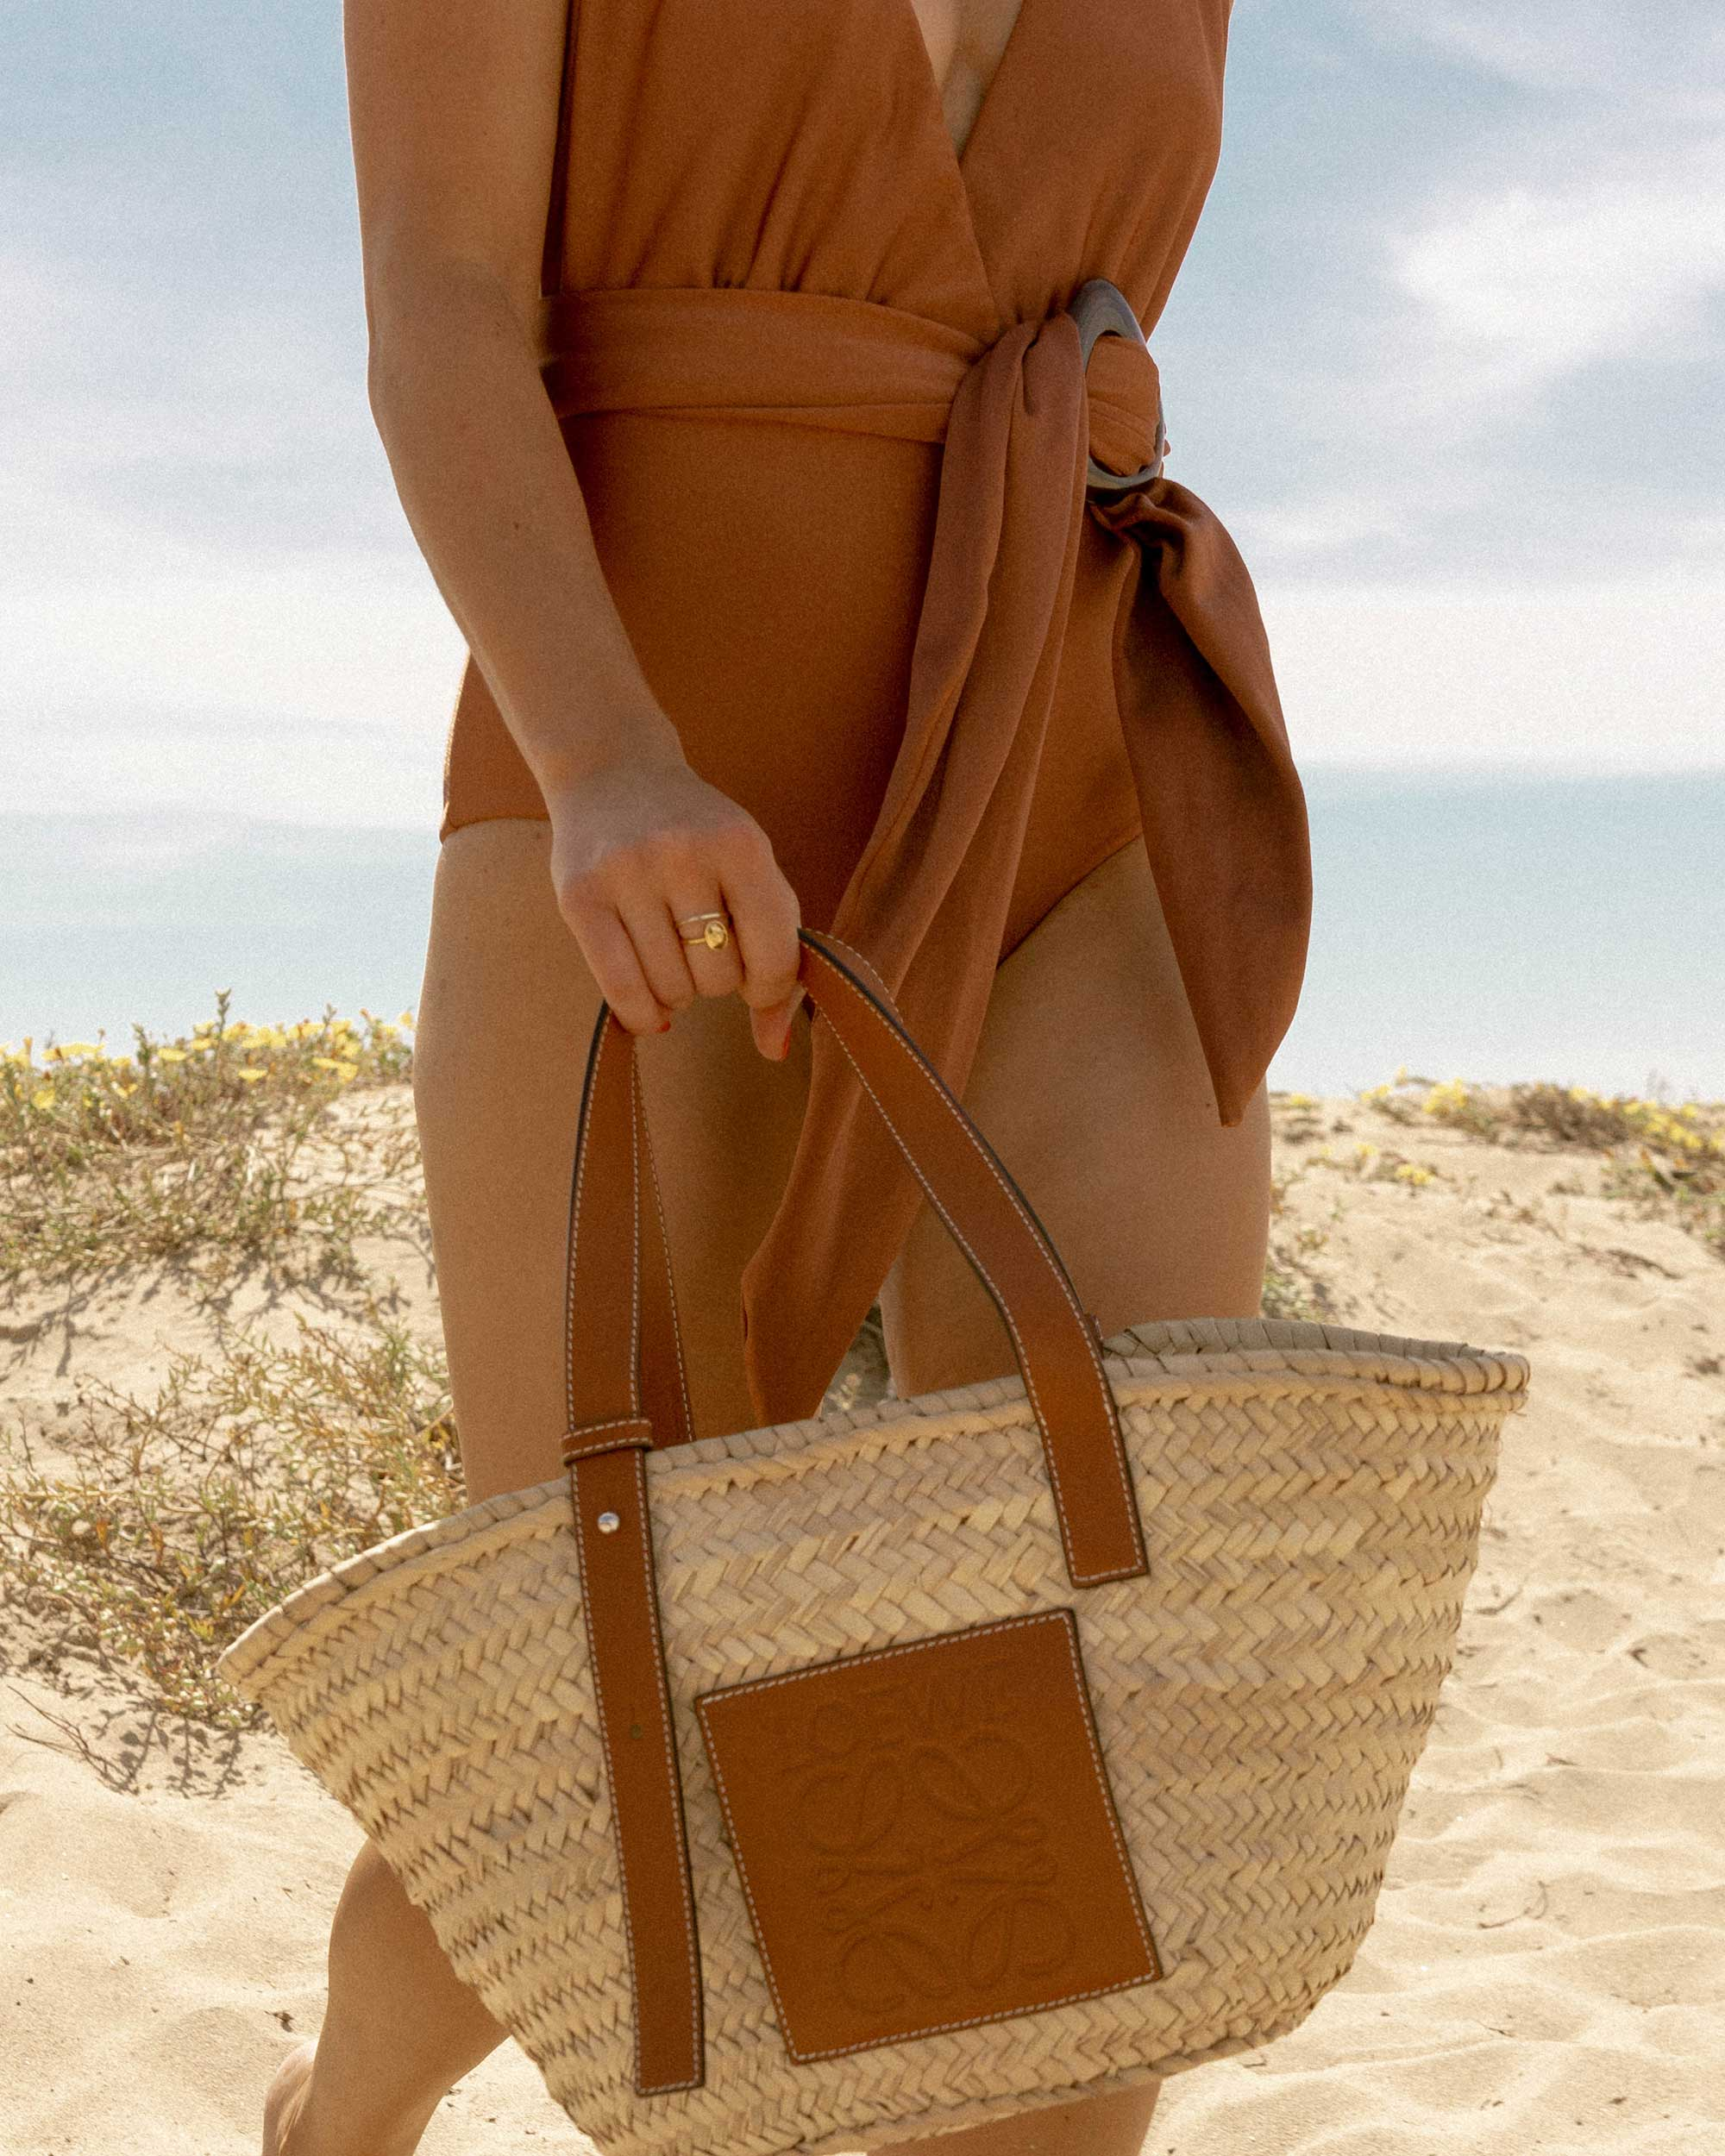 Sarah Butler of Sarah Styles Seattle wears Patbo solid brown belted swimsuit and Loewe Small Raffia Basket Tote Bag for Stylish one-piece swimsuit to wear to the beach | @sarahchristine -11.jpg